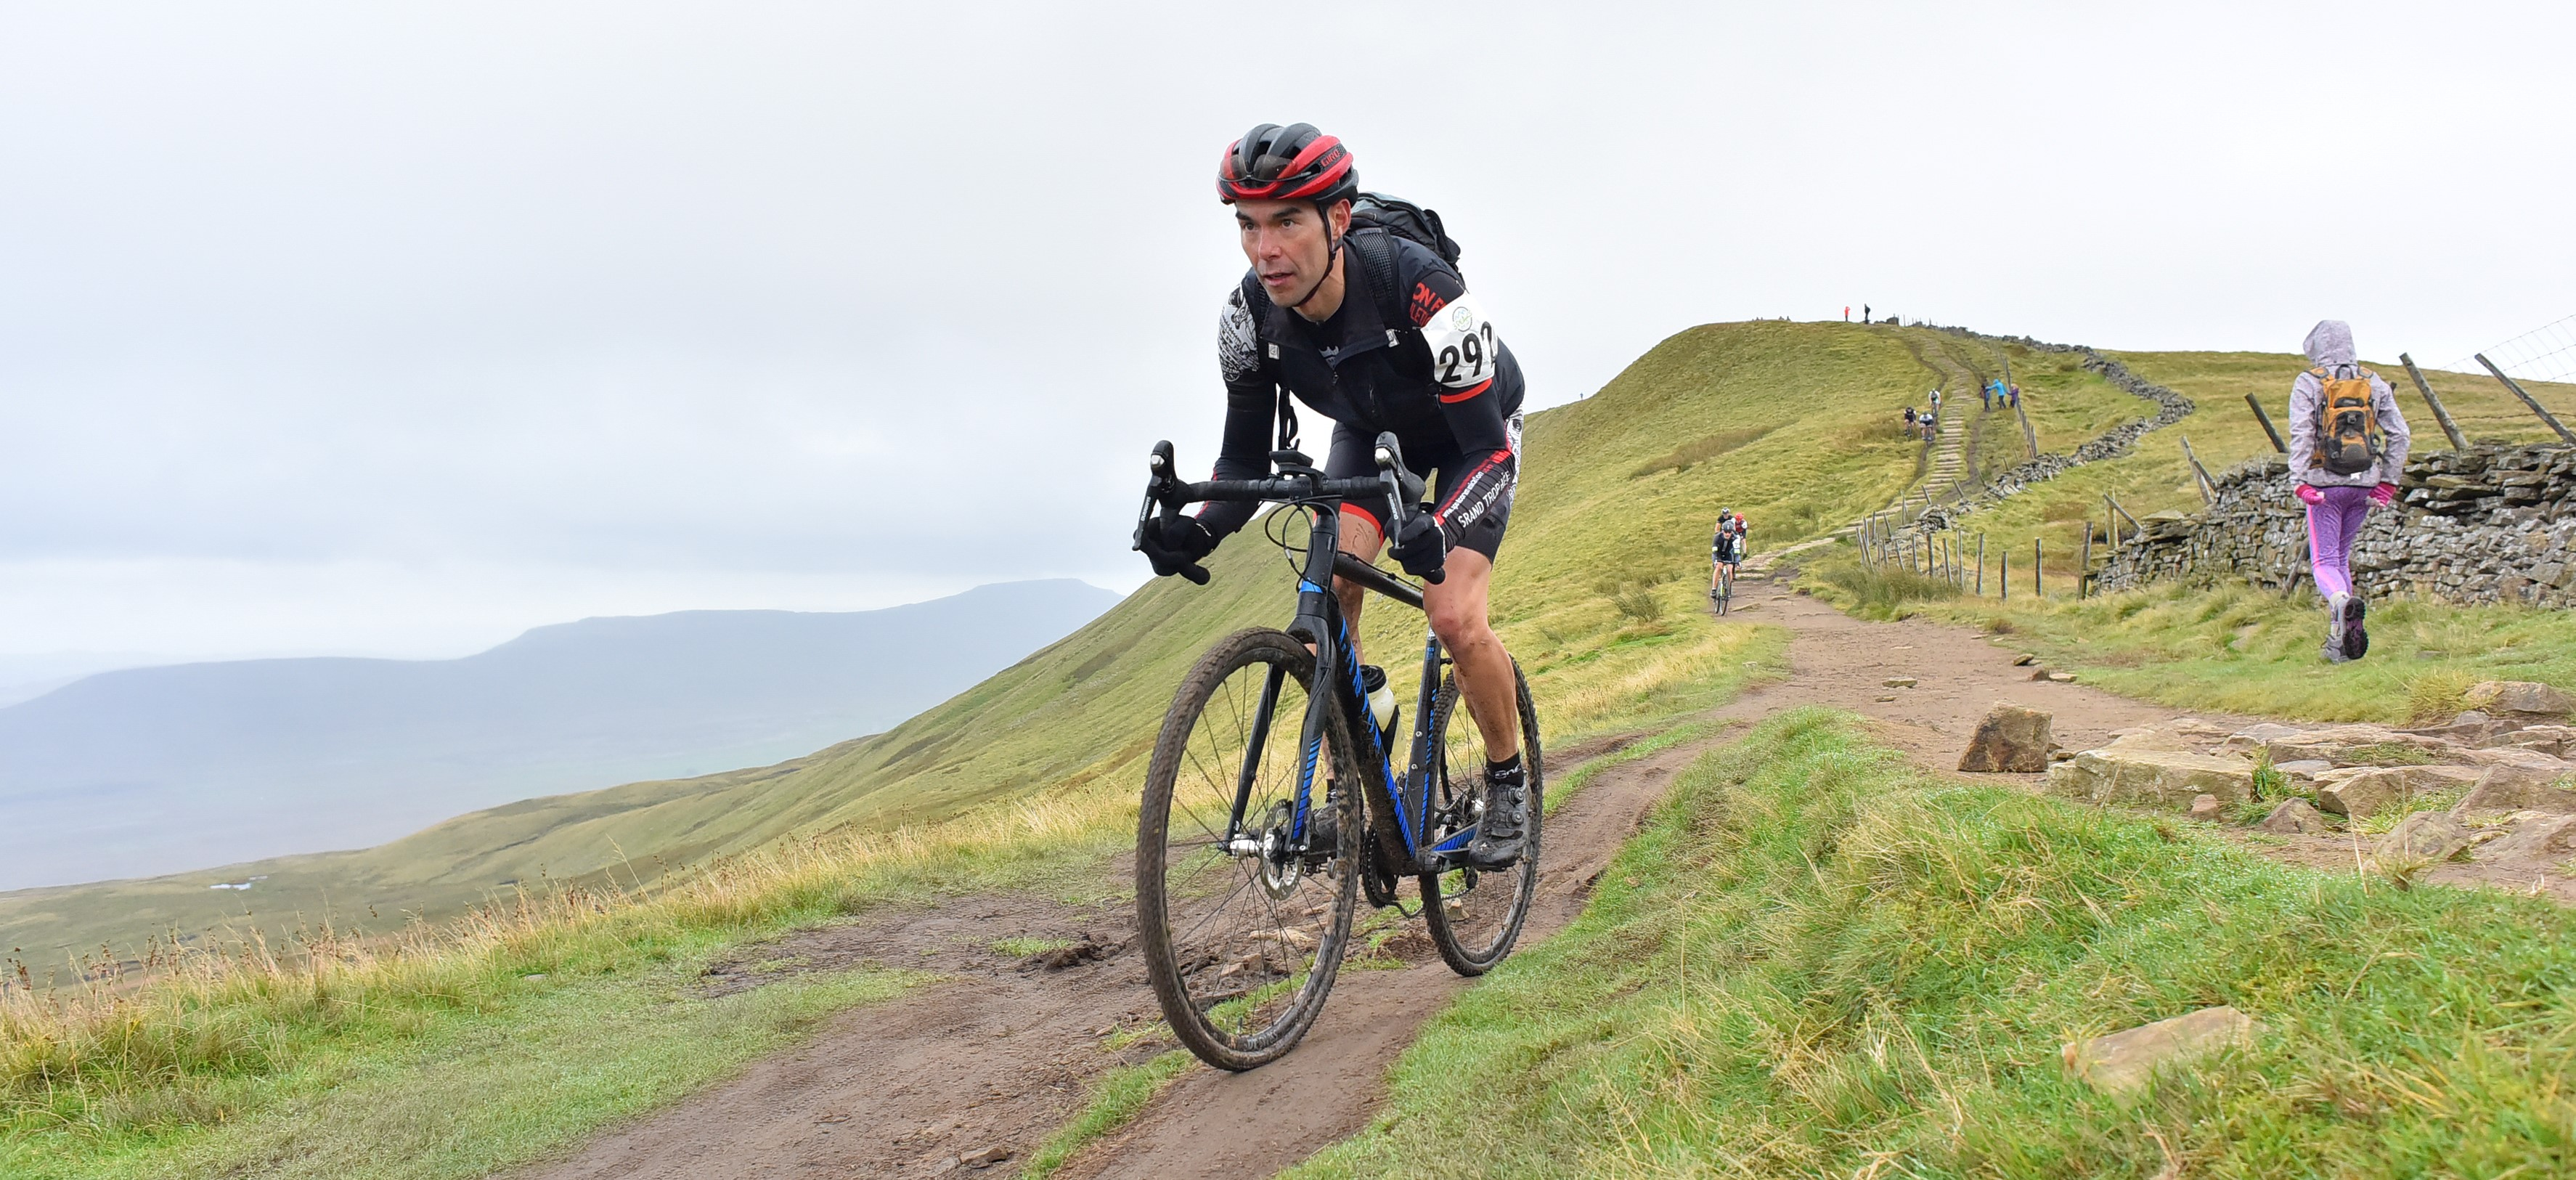 3 Peaks Cyclocross Race (5 things I wish I'd known)